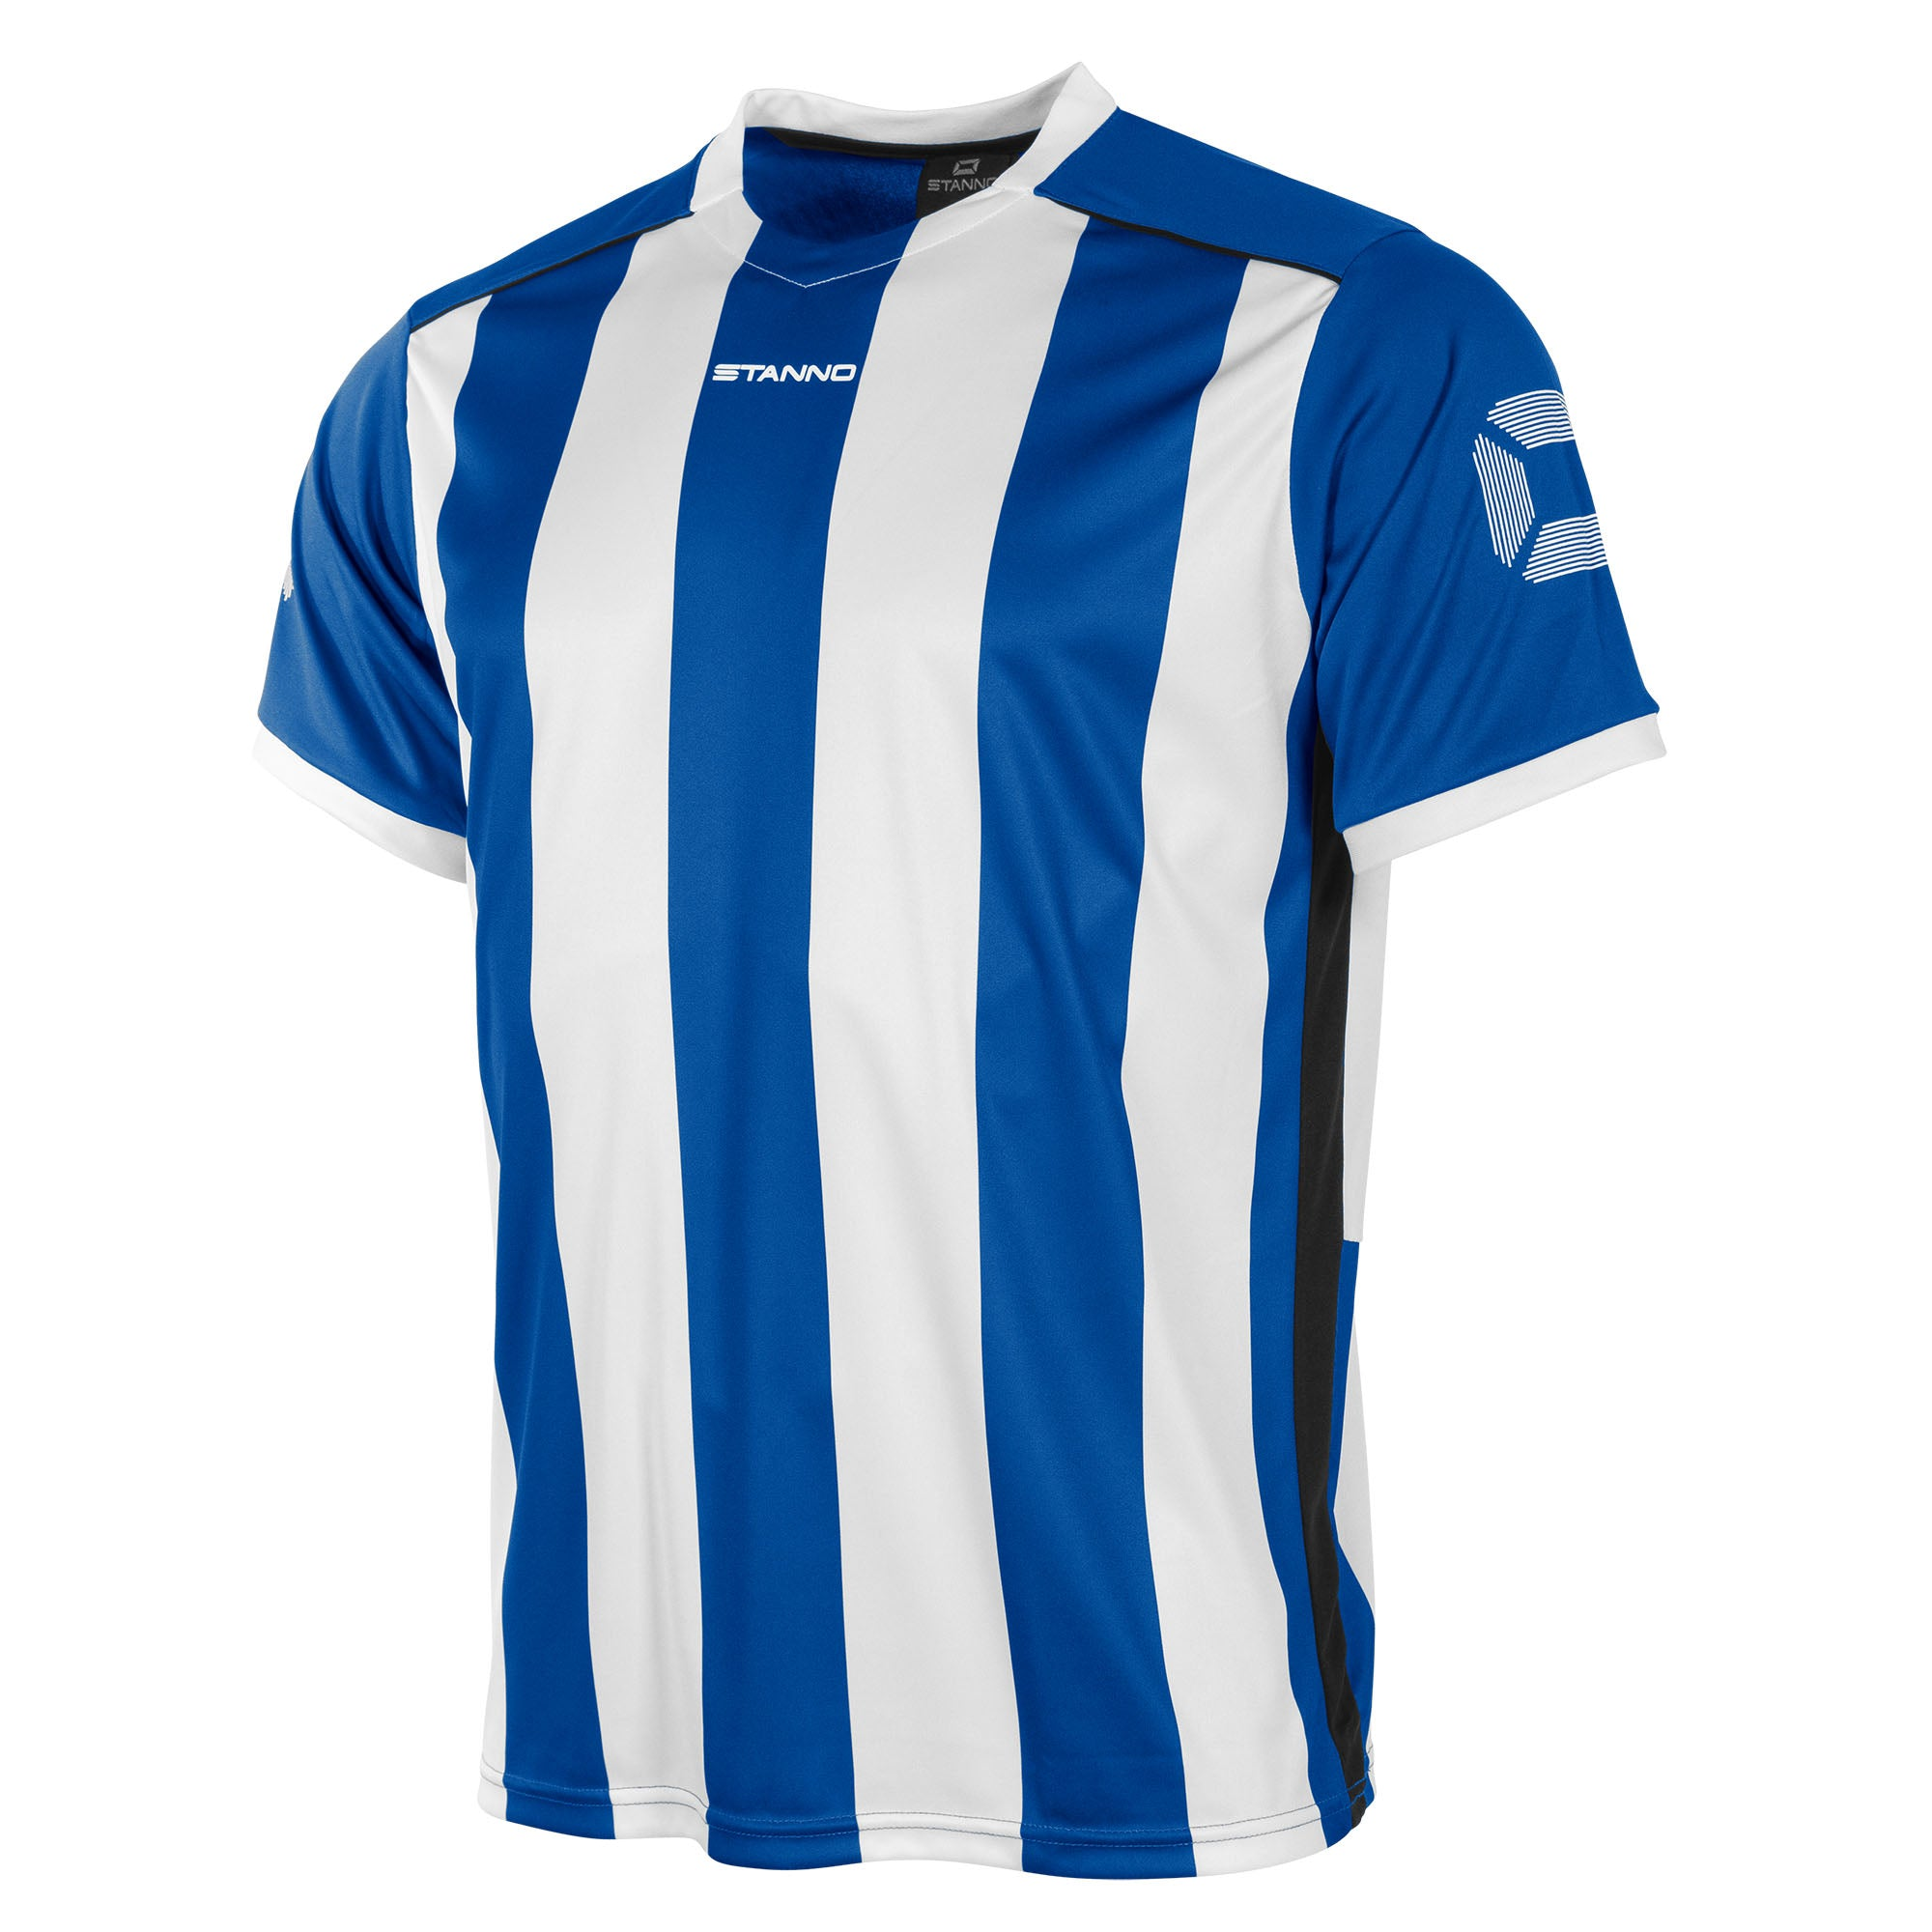 Front of Stanno Brighton short sleeved shirt in royal blue and white vertical stripes, central printed Stanno text logo on the chest